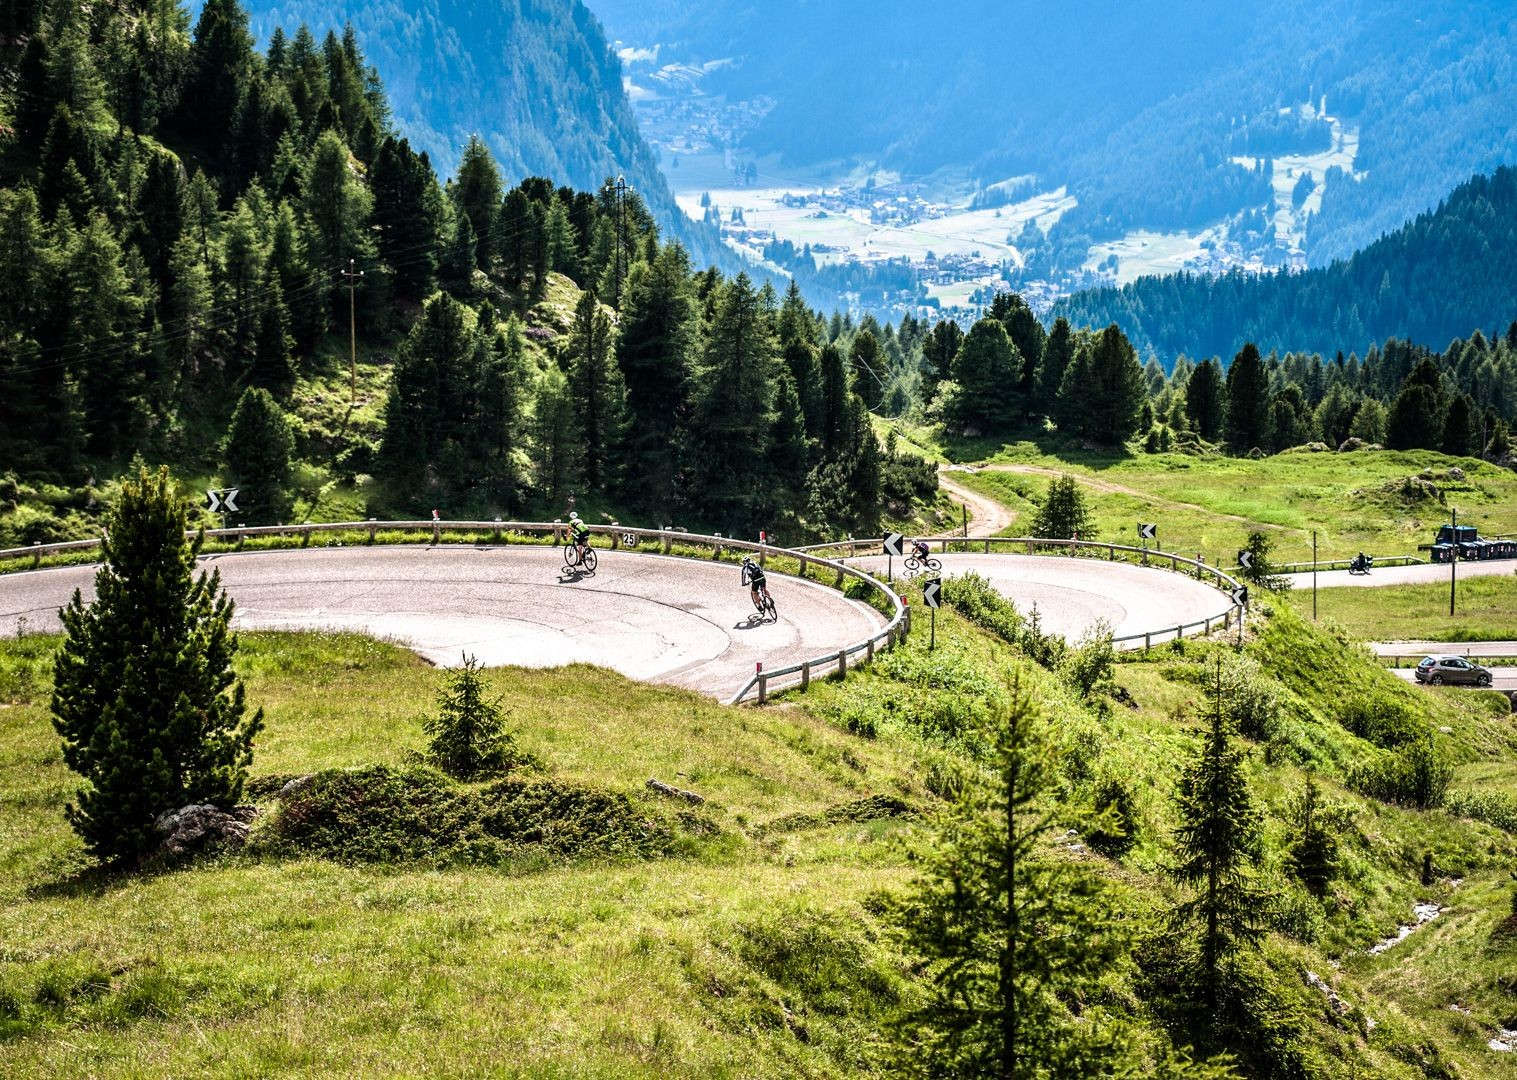 climb-the-zoncalan-italian-dolomites-guided-road-cycling.jpg - Italy - Alps and Dolomites - Giants of the Giro - Guided Road Cycling Holiday - Italia Road Cycling